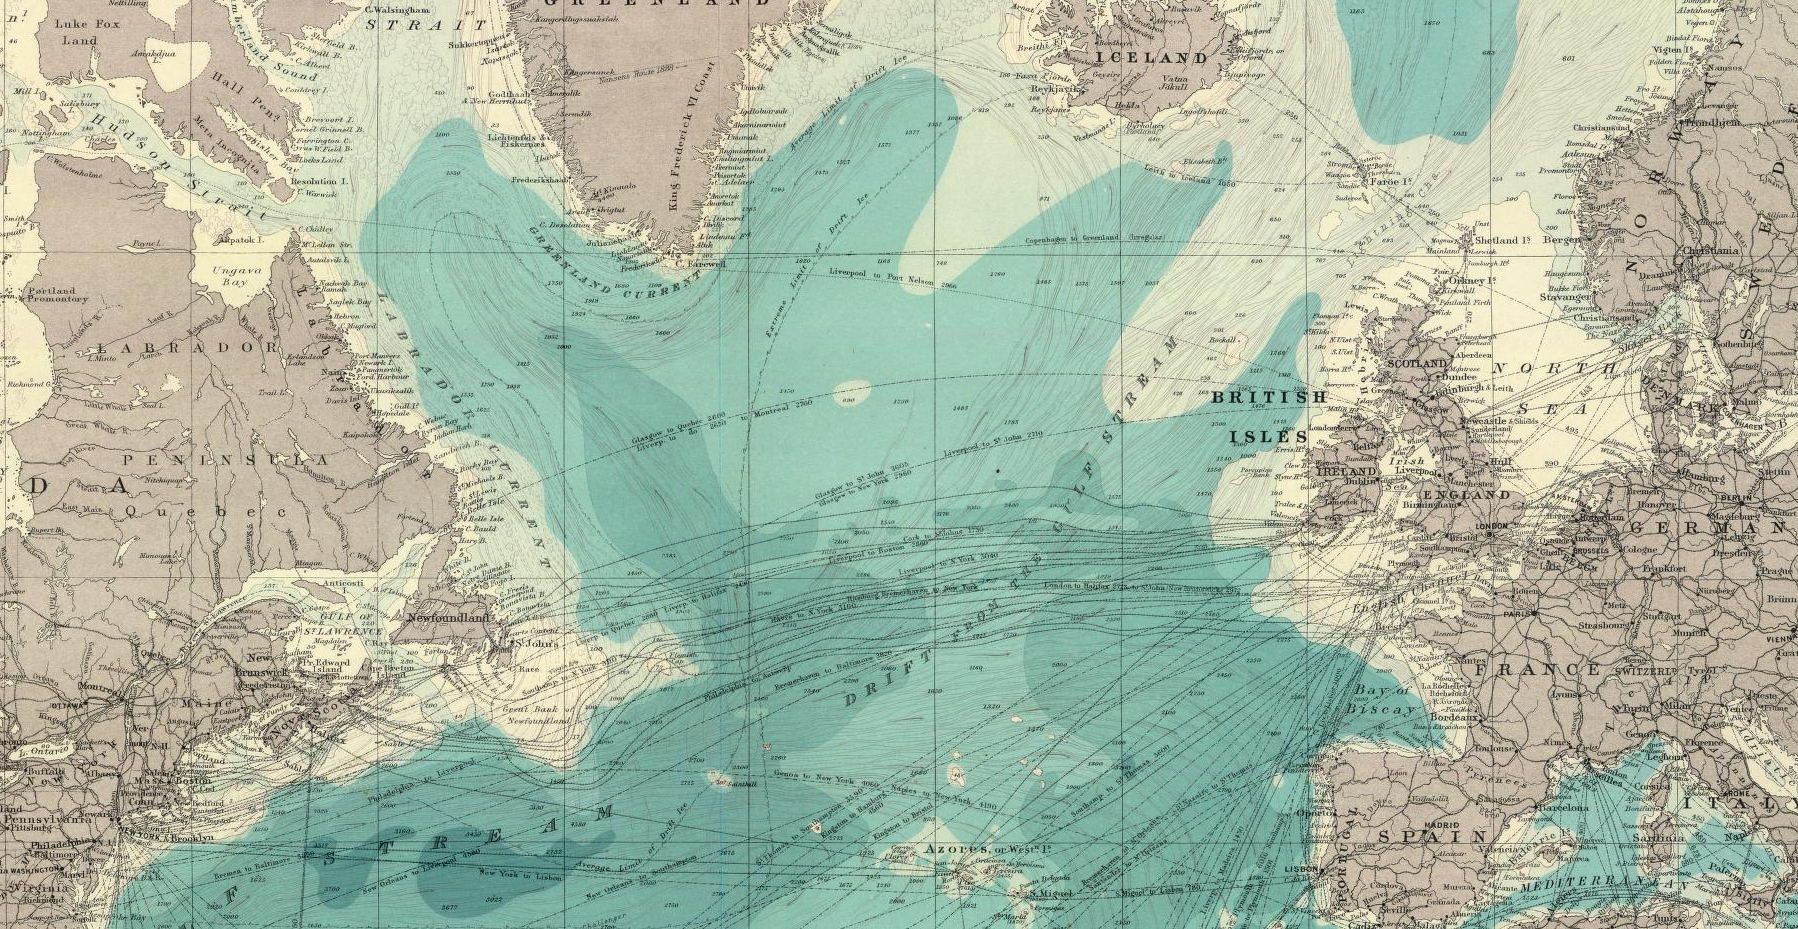 North Atlantic Times Atlas